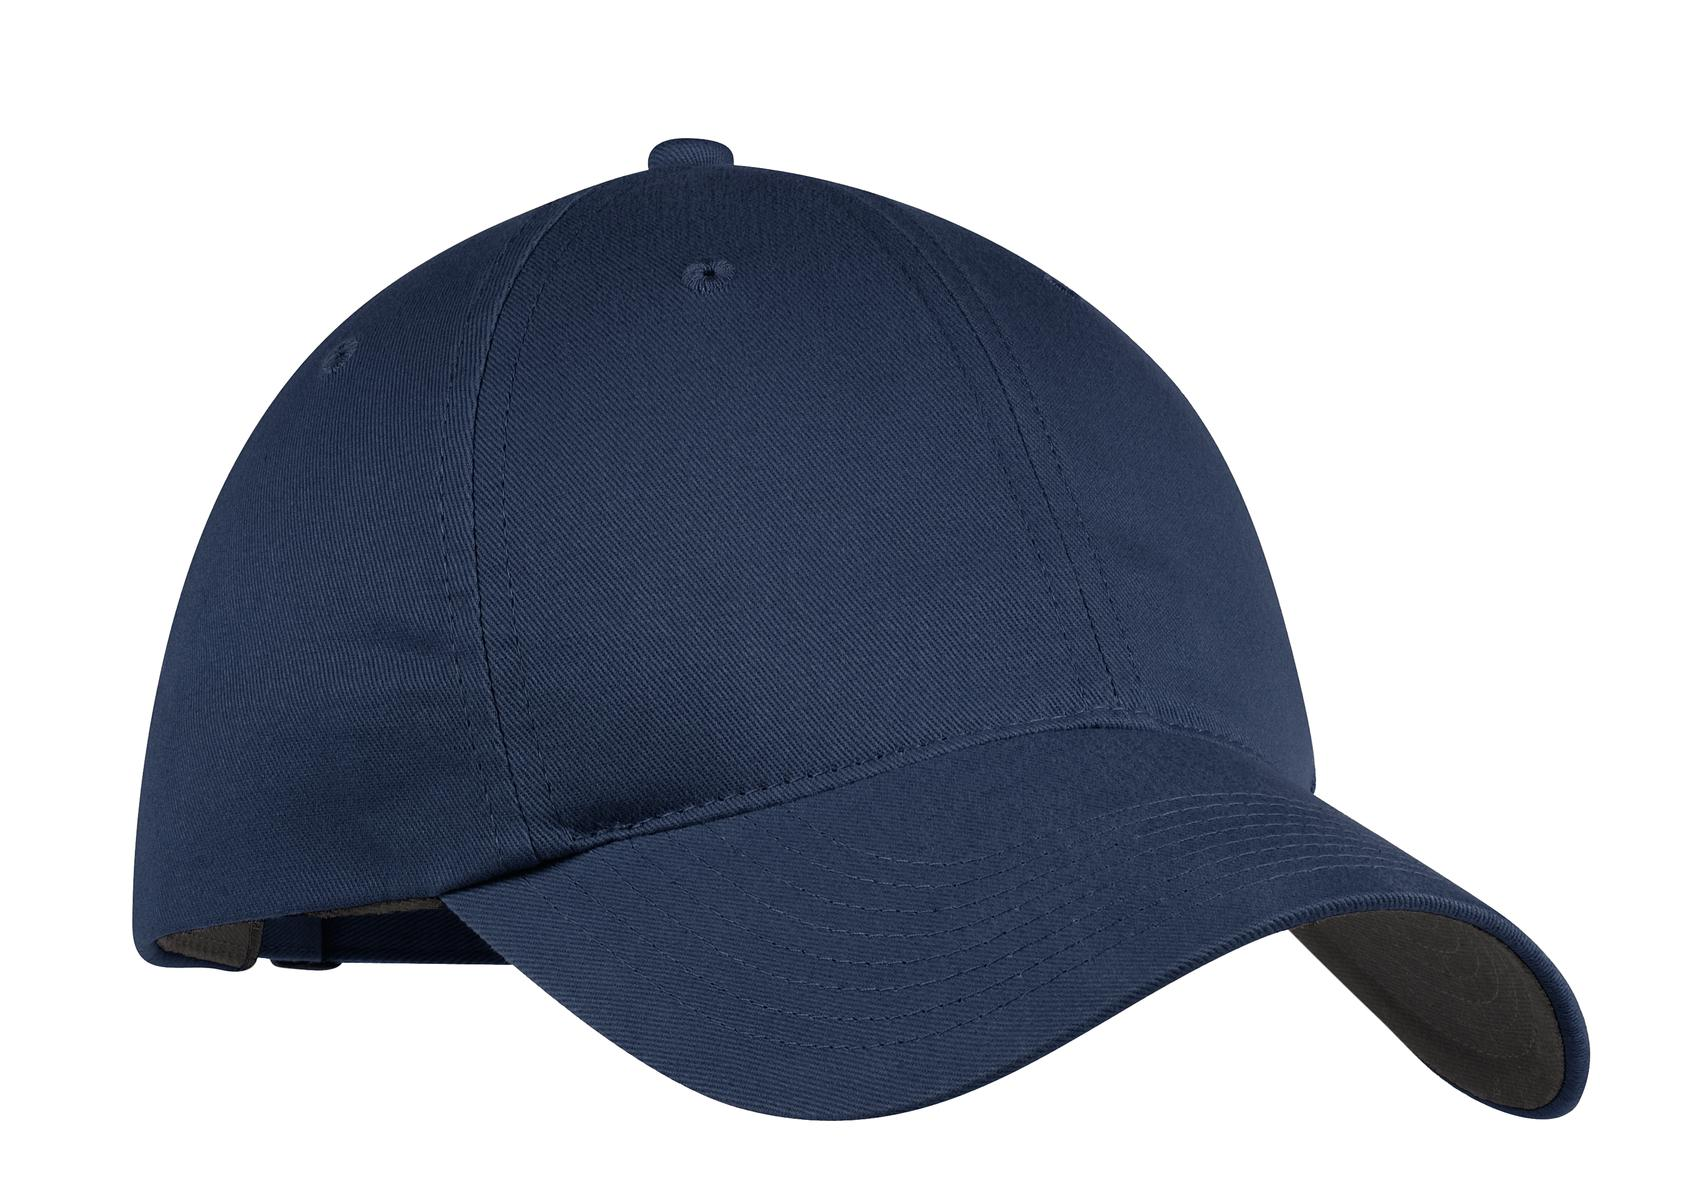 Nike Unstructured Twill Cap.  580087 - Deep Navy